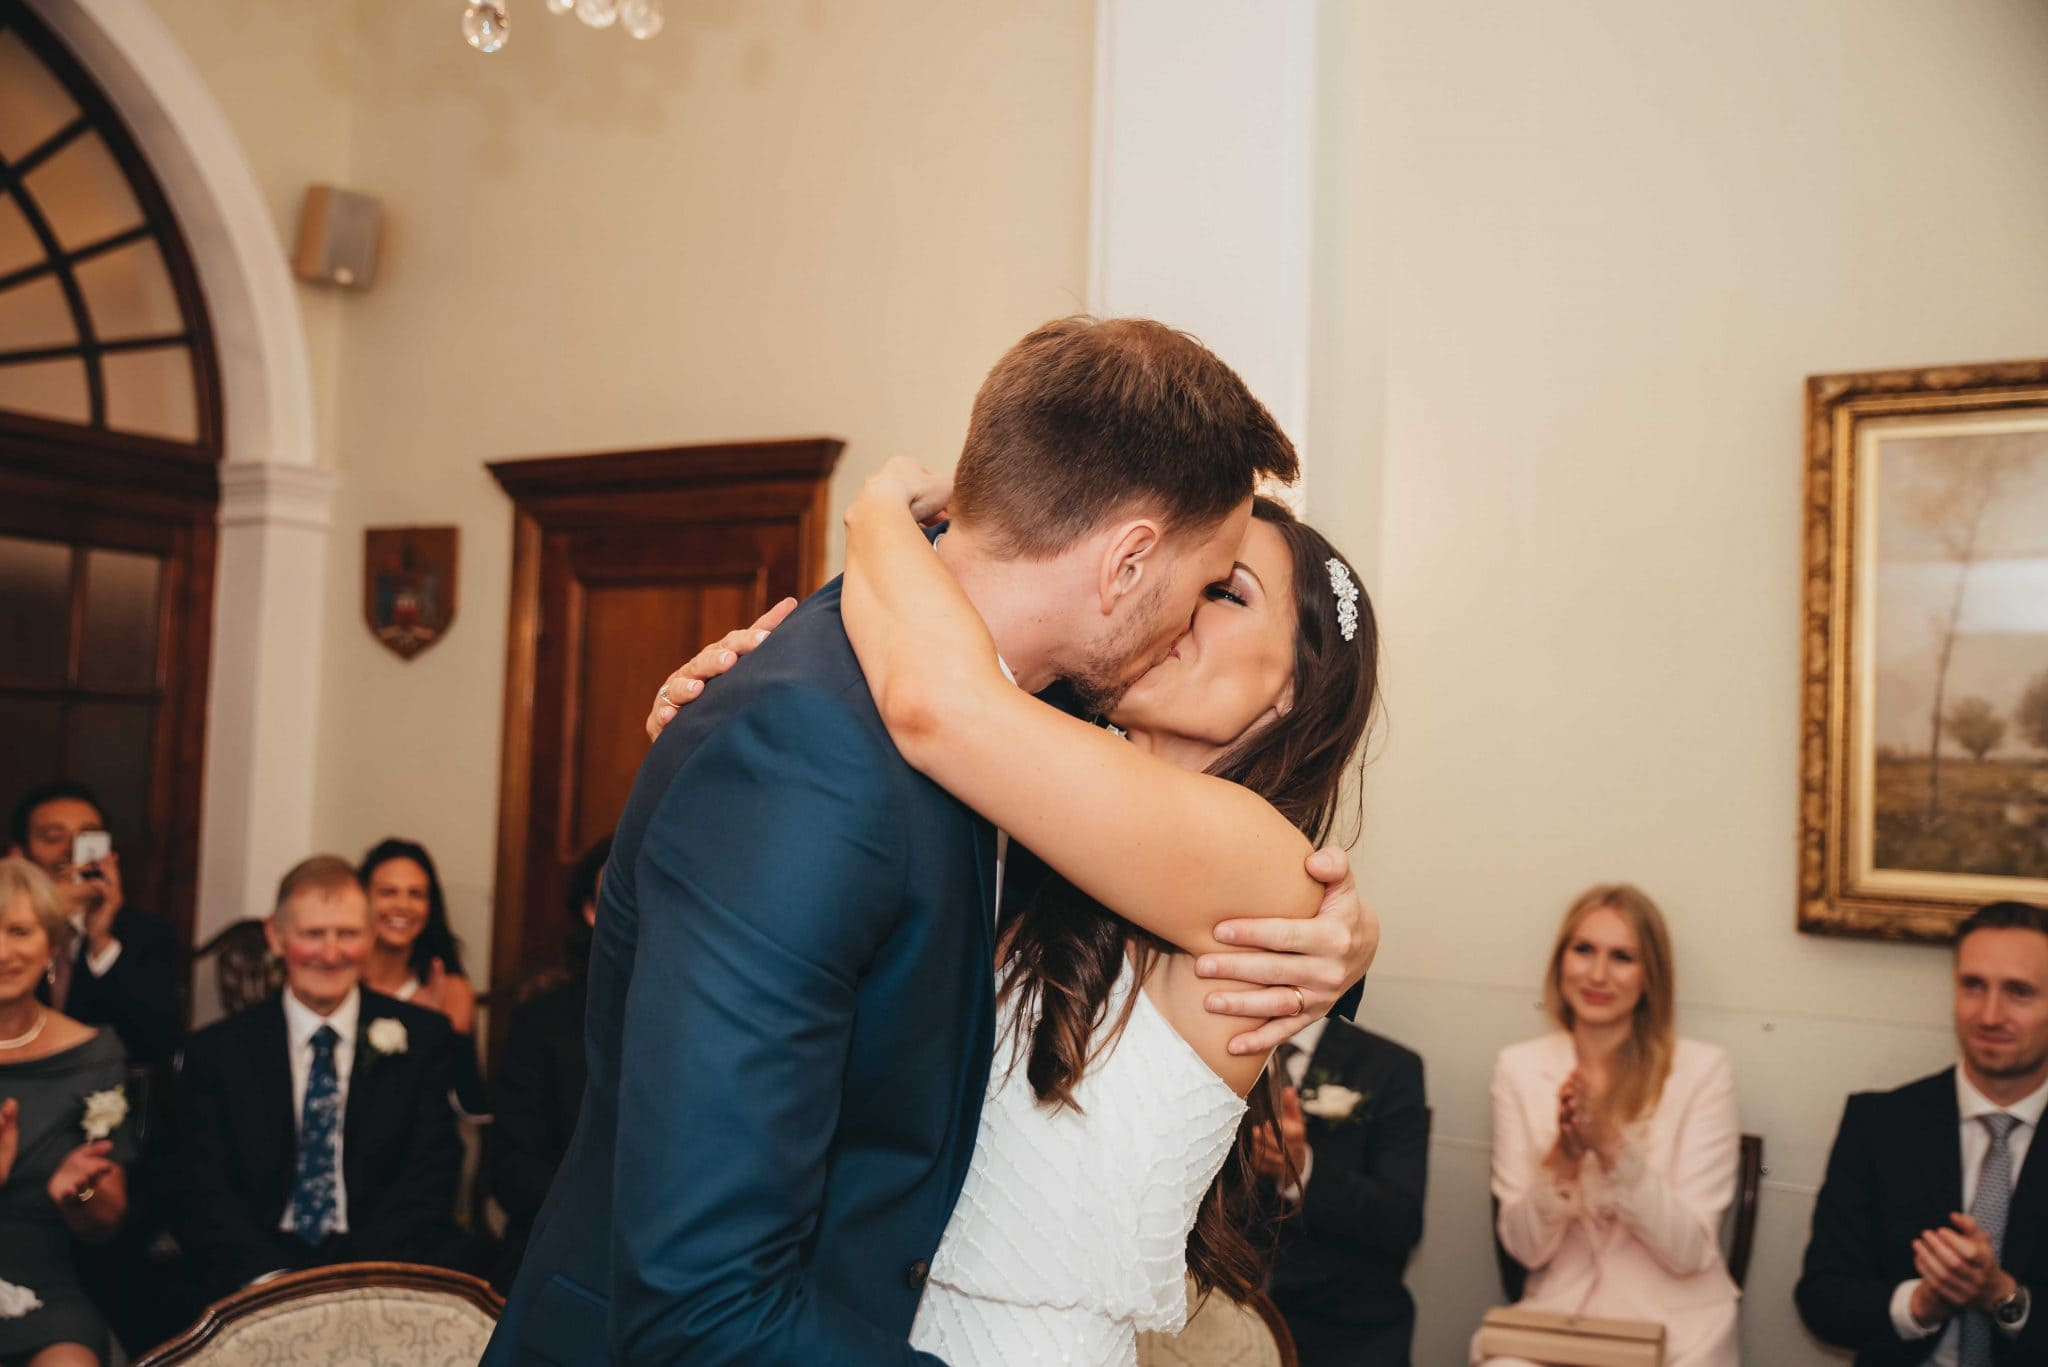 Married couple kissing after the vows at the registry office